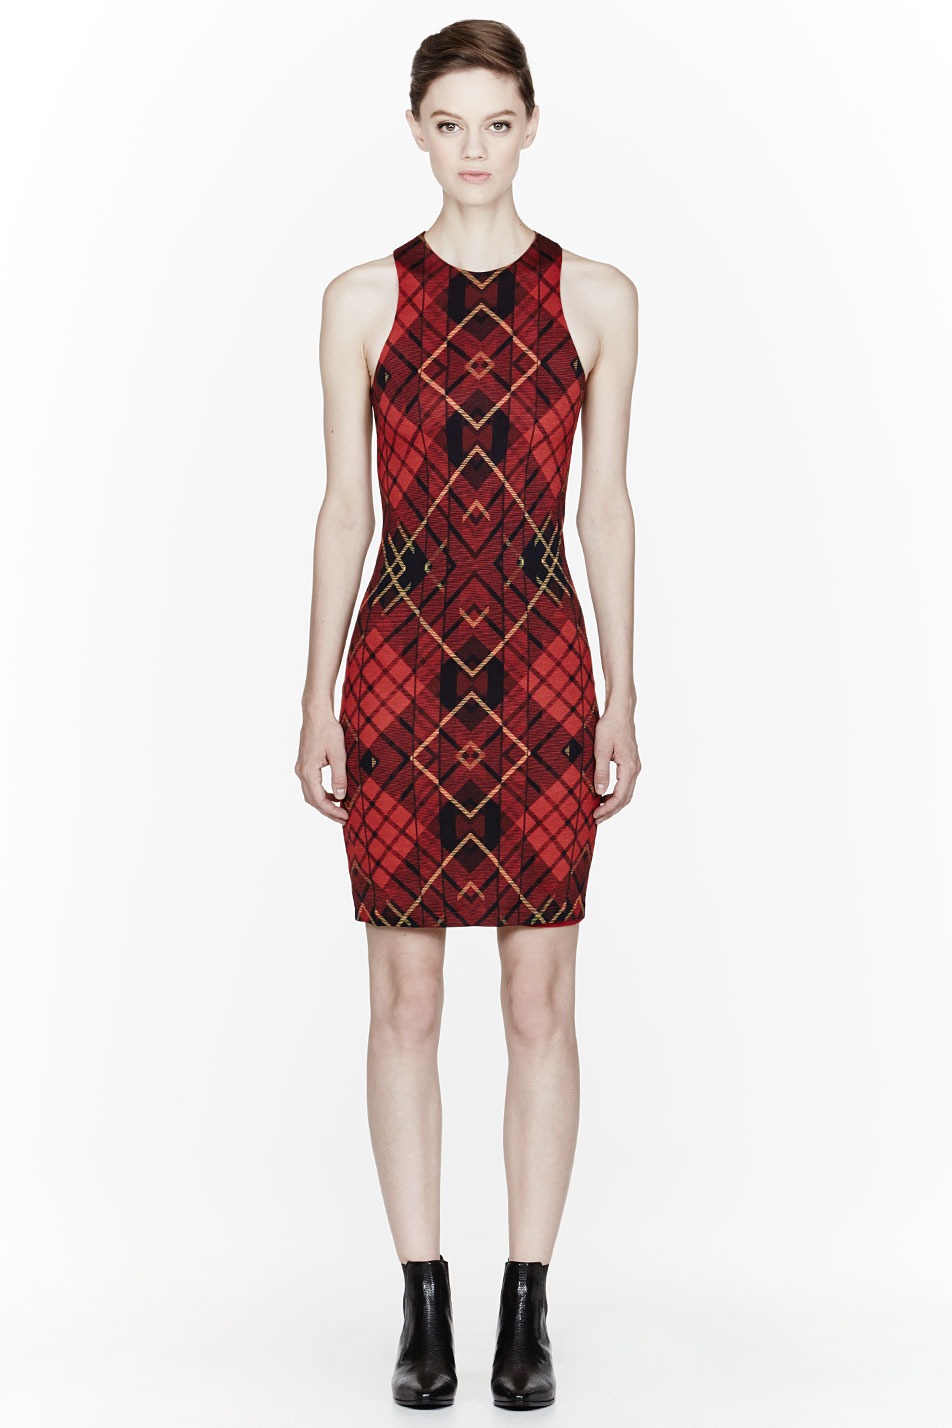 Middleton Wood provide a beautiful range of Apanage dresses, fabulous outfits catering for all those important special occasion clothing requirements. Cookie Policy This website uses cookies to ensure proper functionality of the shopping cart and checkout progress.